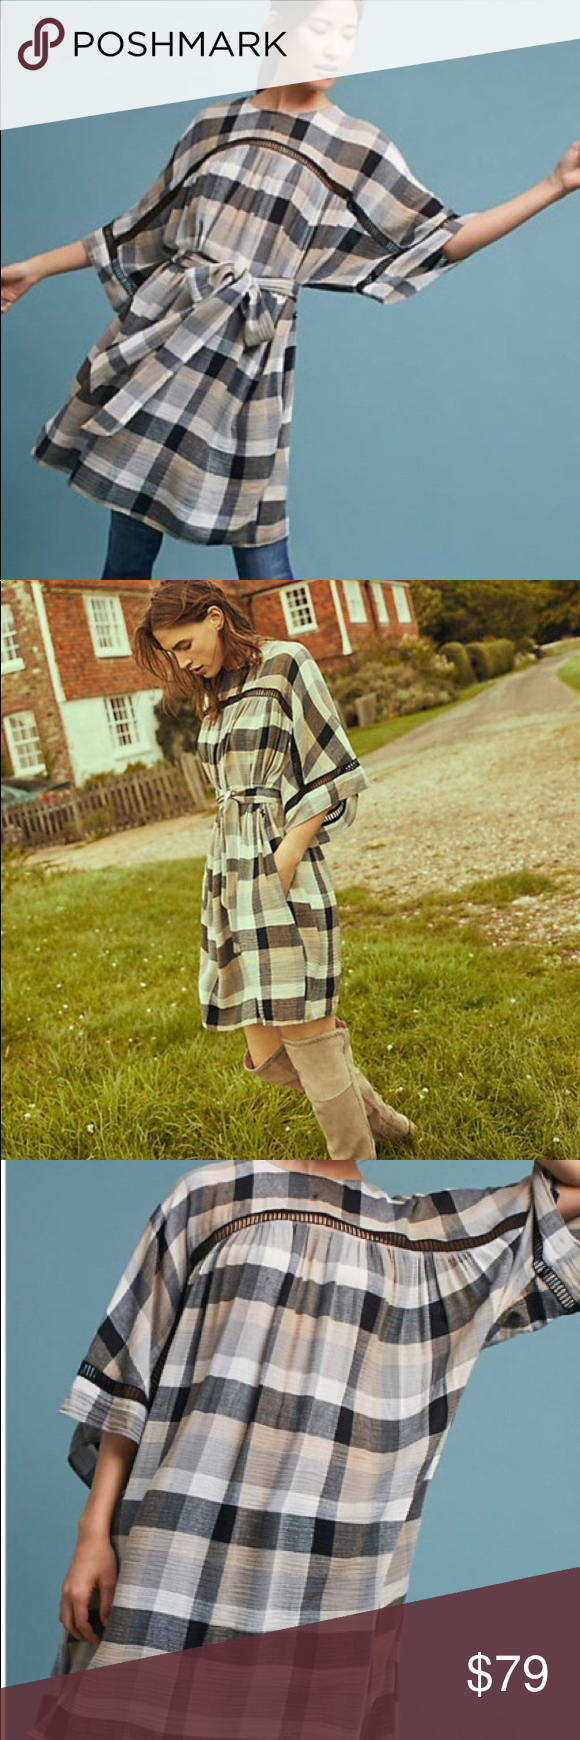 50464afc0556 Maeve Tie- Waist Kimono Tunic Dress size M NWT beautiful from Anthropologie.  Pair this beautiful plaid tunic dress with over the knee boots or with your  ...